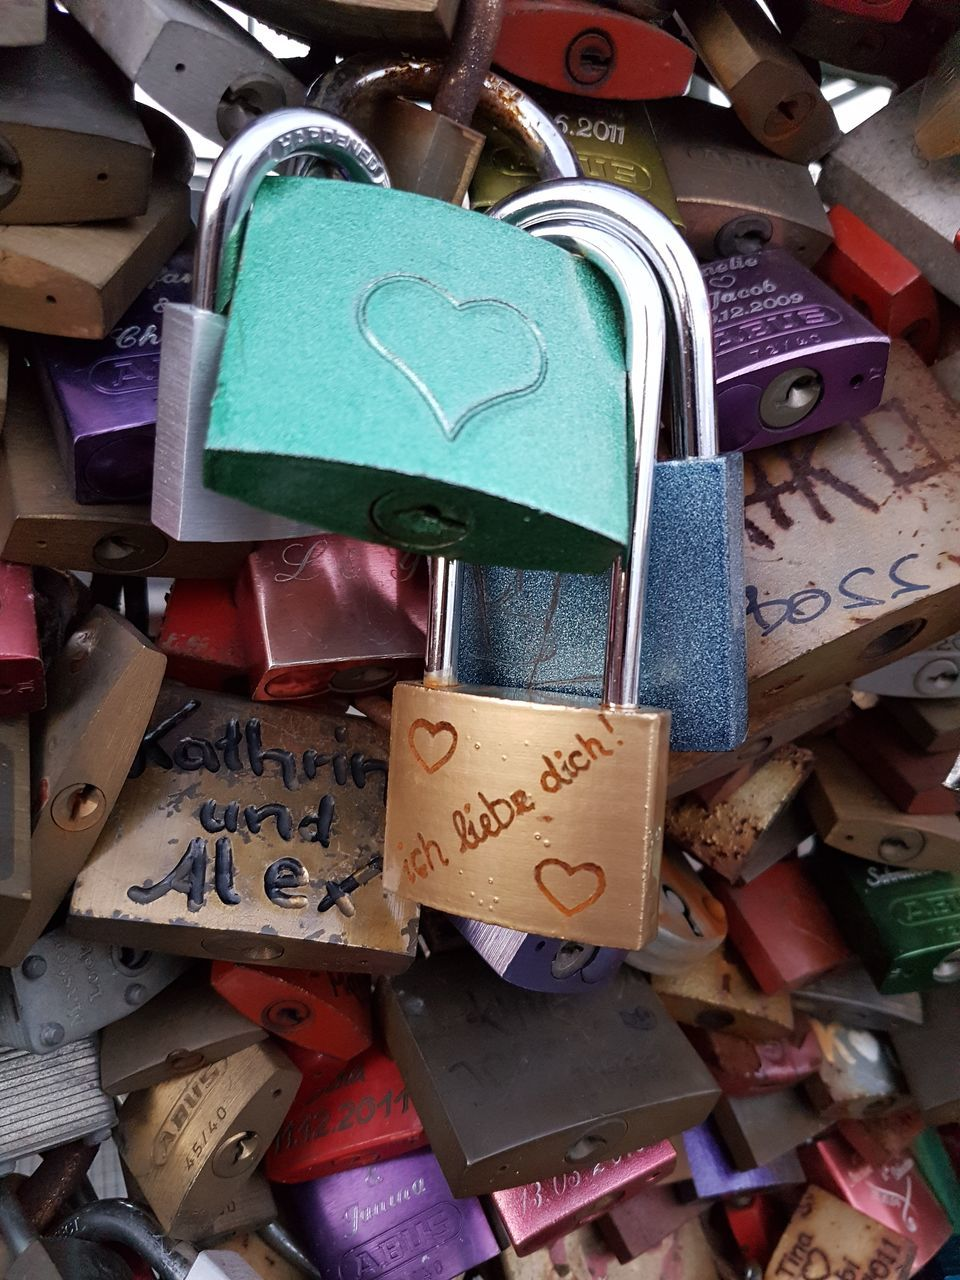 padlock, lock, security, love lock, love, safety, abundance, hope, large group of objects, variation, protection, metal, heart shape, hanging, close-up, no people, luck, hope - concept, multi colored, day, full frame, outdoors